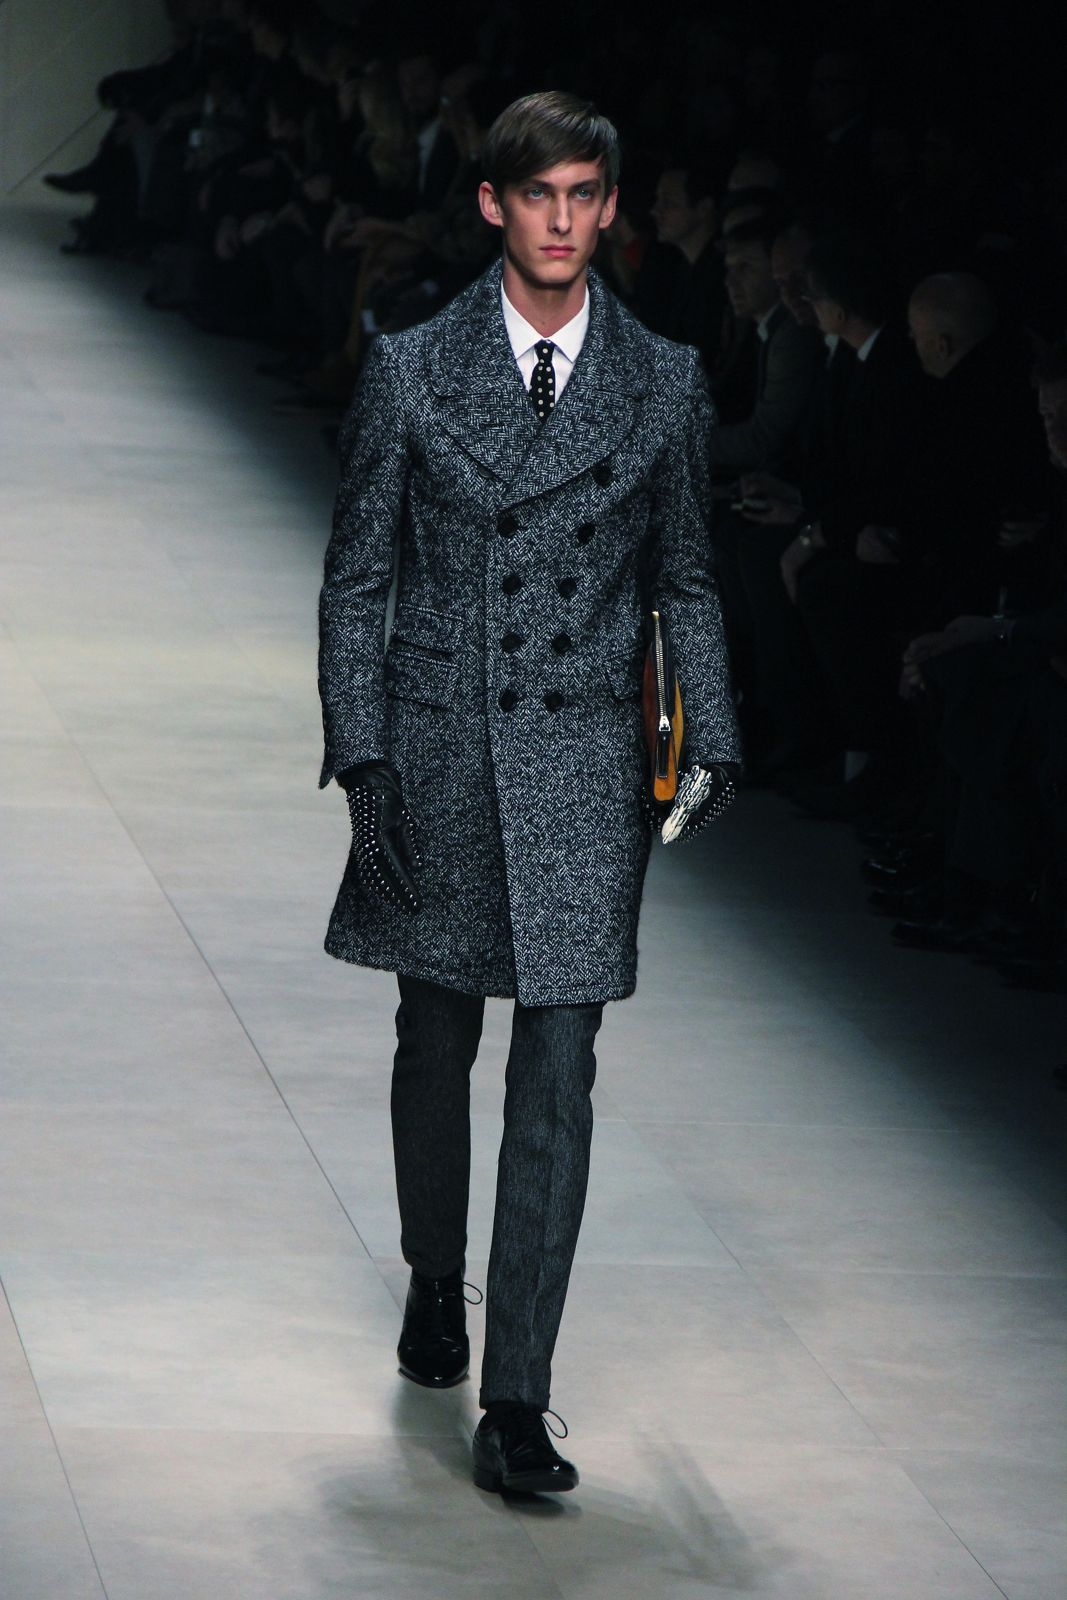 Catwalk Burberry Prorsum Fall Winter 2012 Men Fashion Show